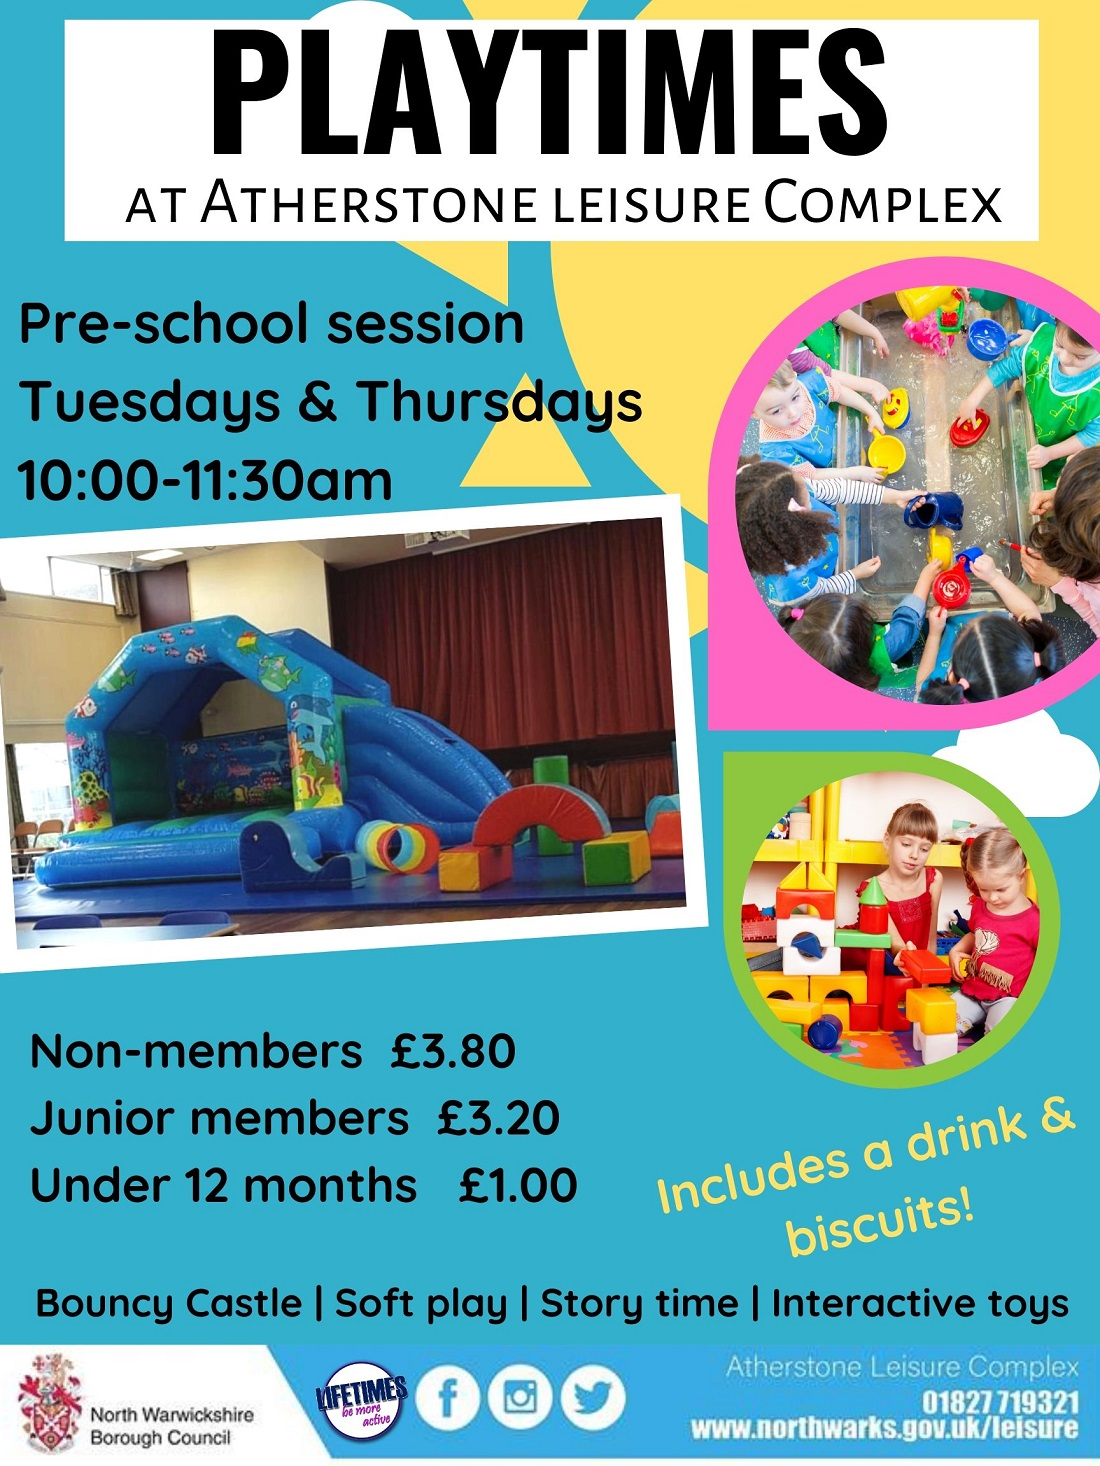 Playtimes at Atherstone